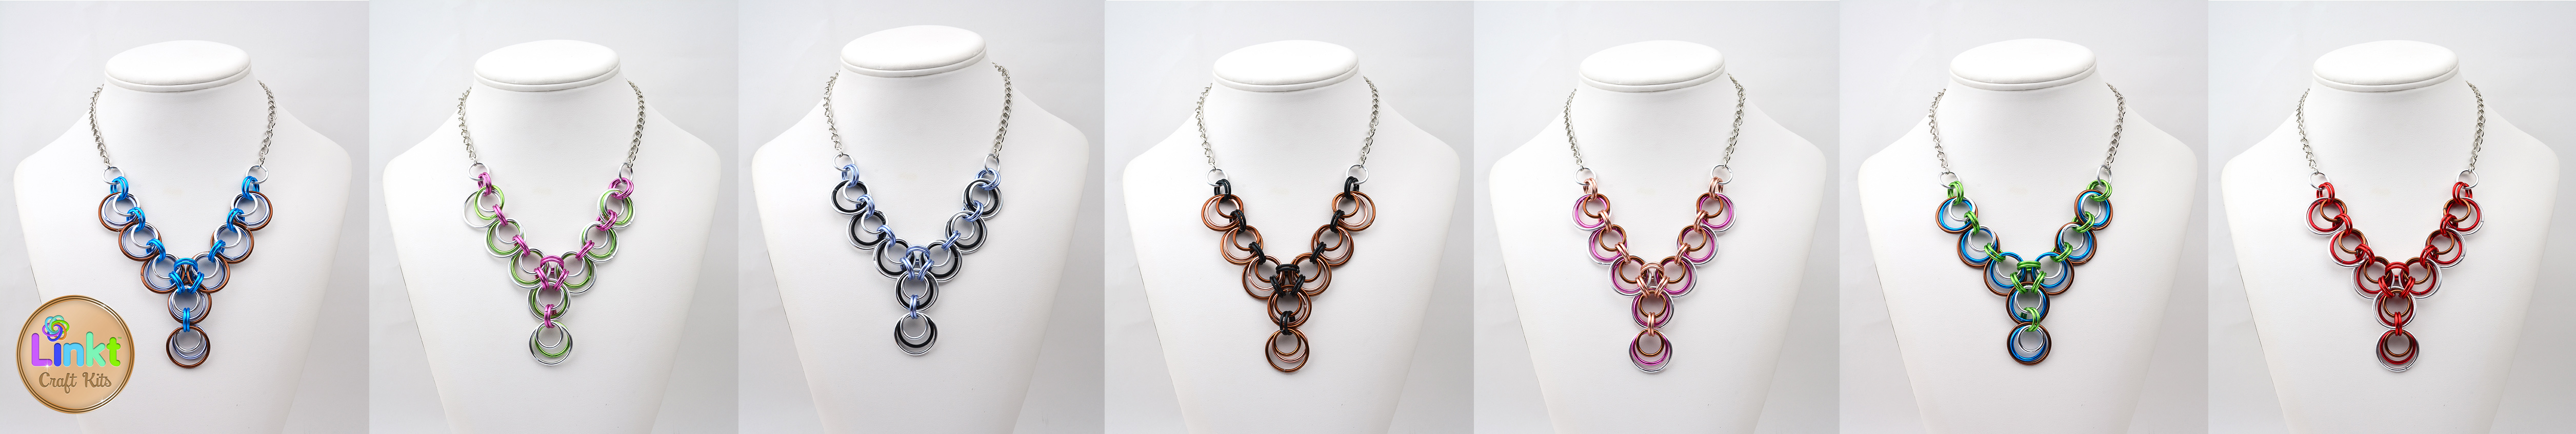 athena Y necklace - 7 different color schemes with Linkt Craft Kits logo